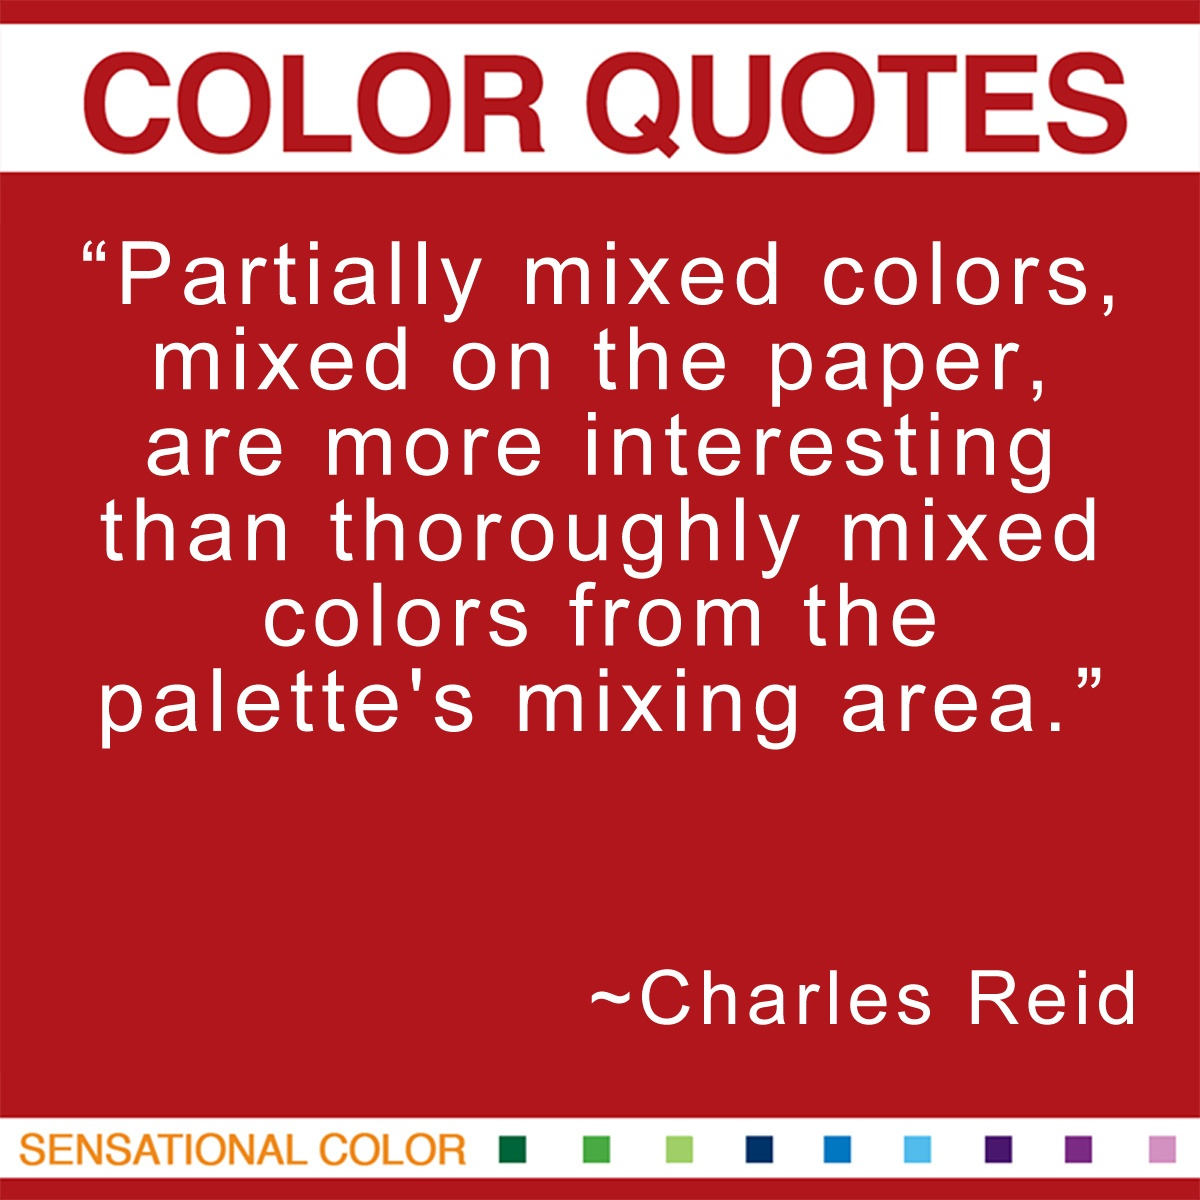 """Partially mixed colors, mixed on the paper, are more interesting than thoroughly mixed colors from the palette's mixing area."" - Charles Reid"